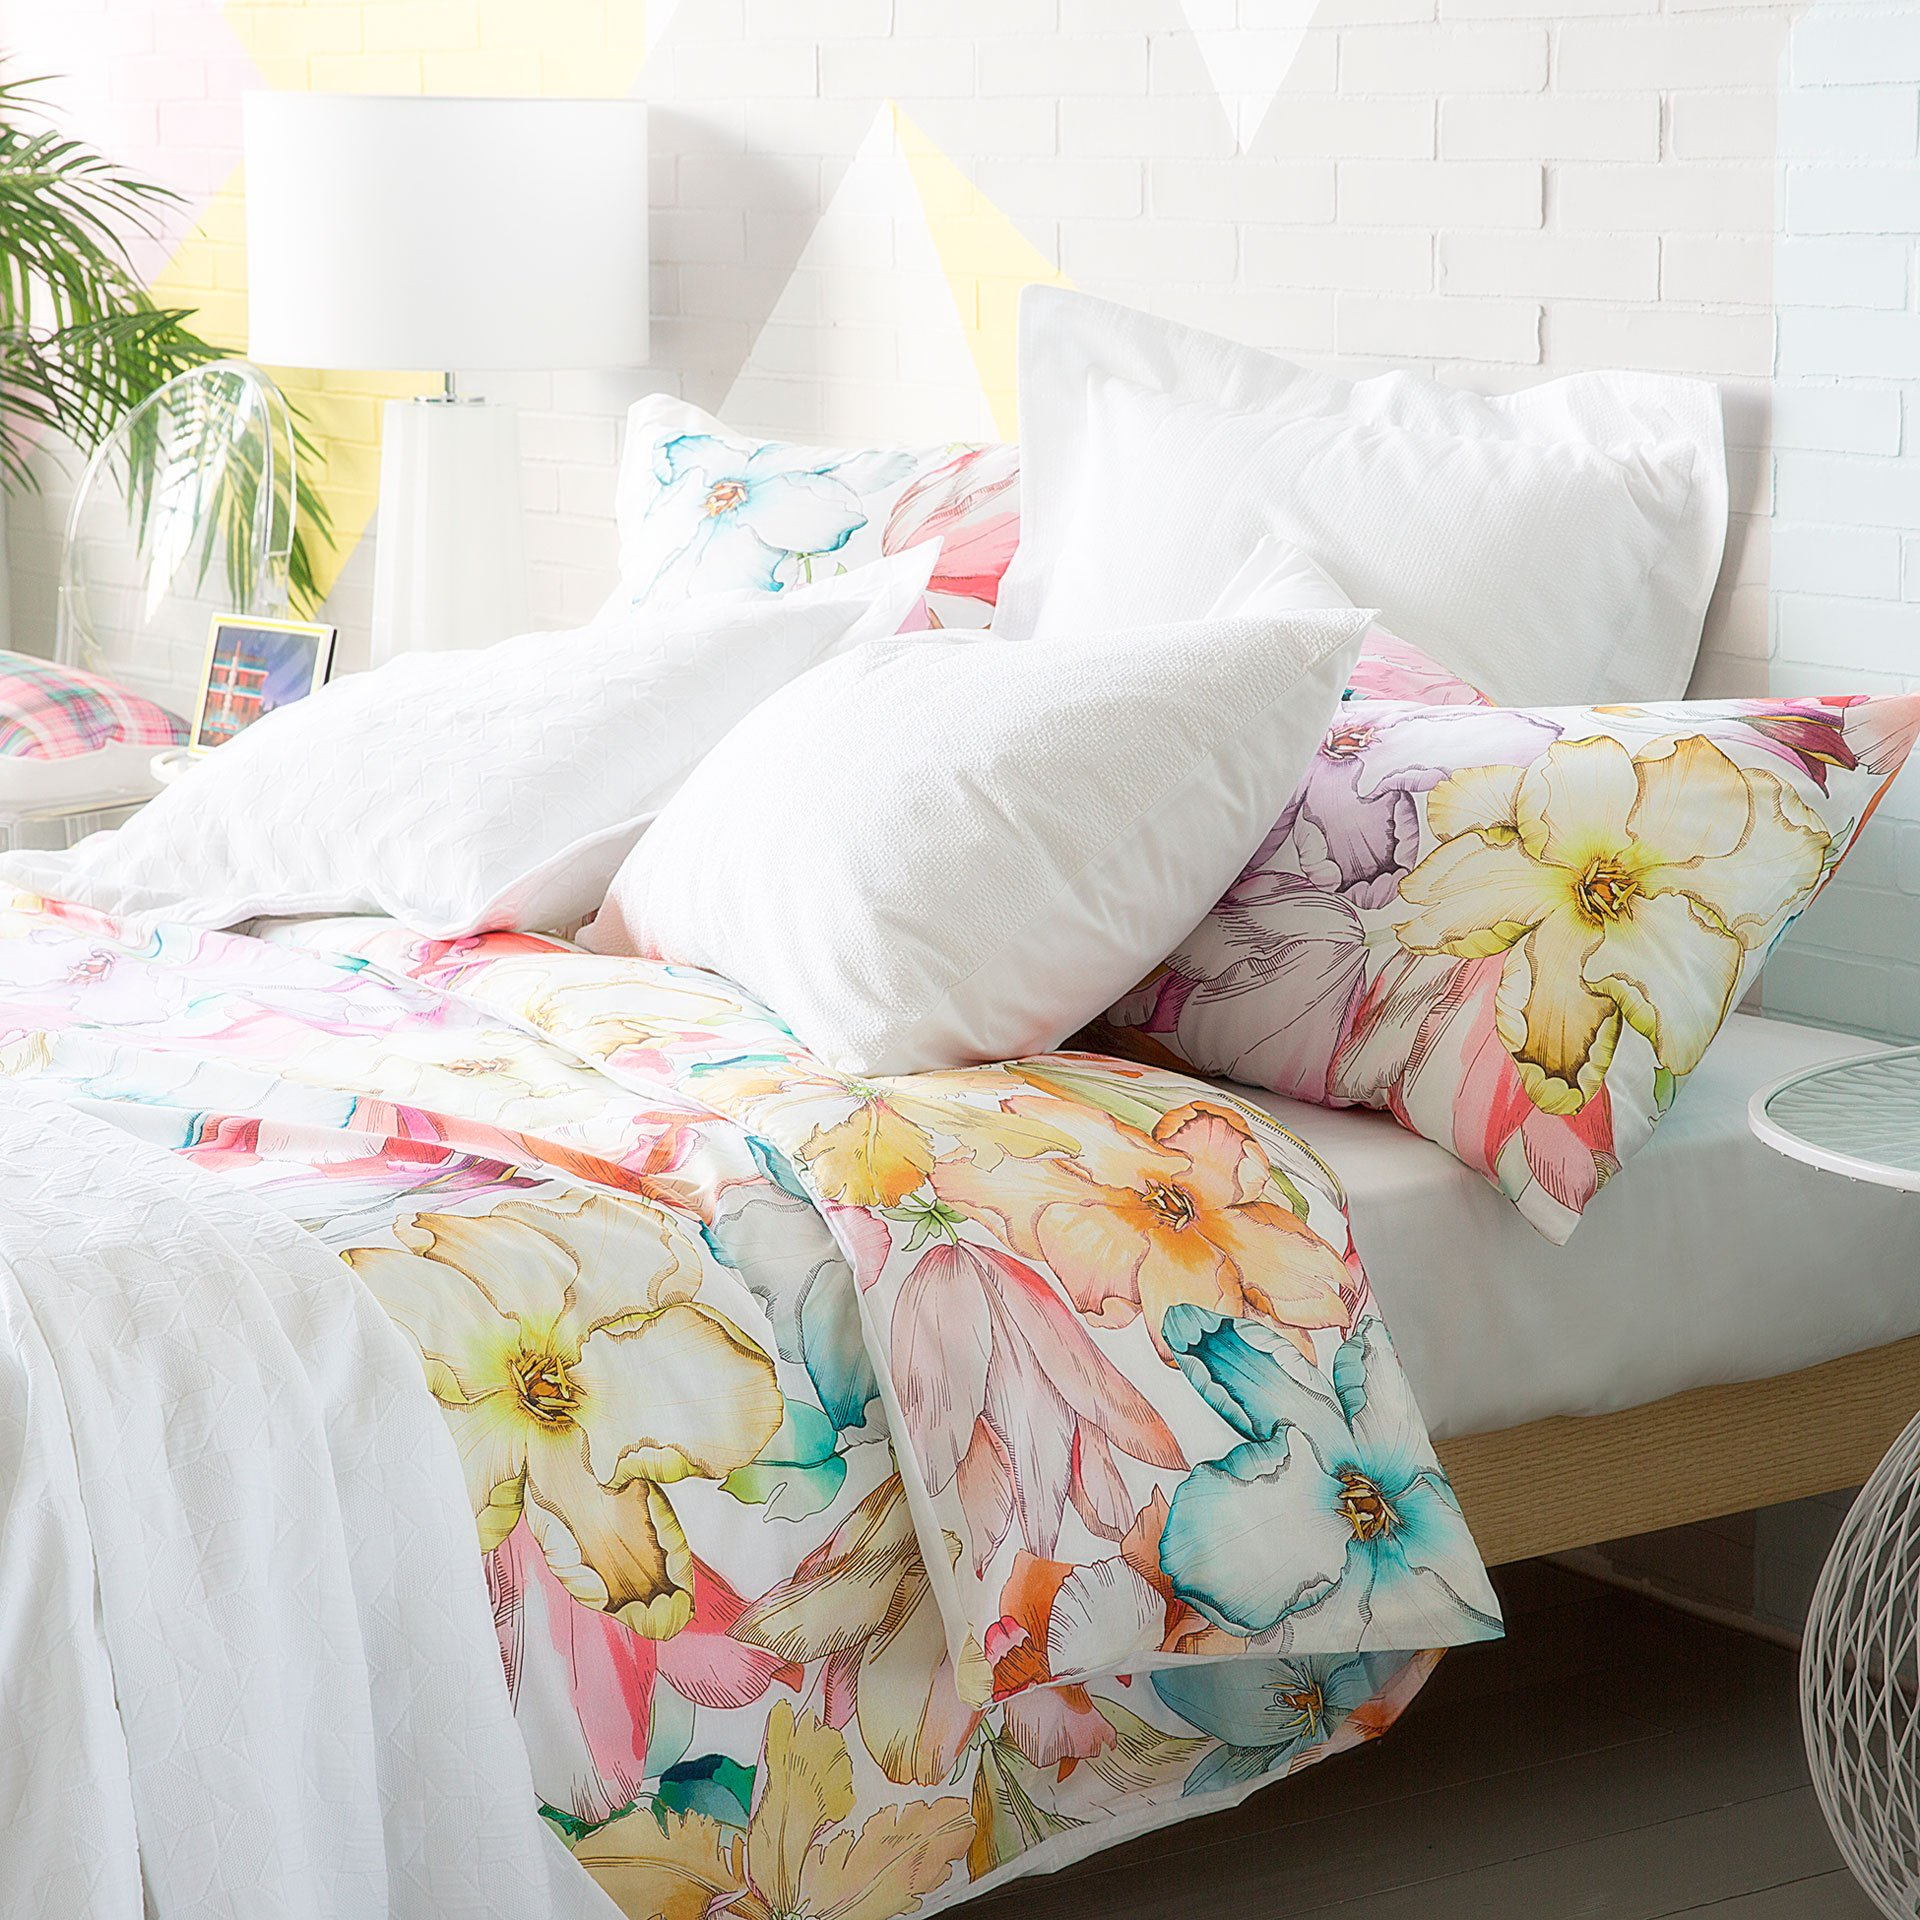 oversized king comforter in bedroom beach style with floatin